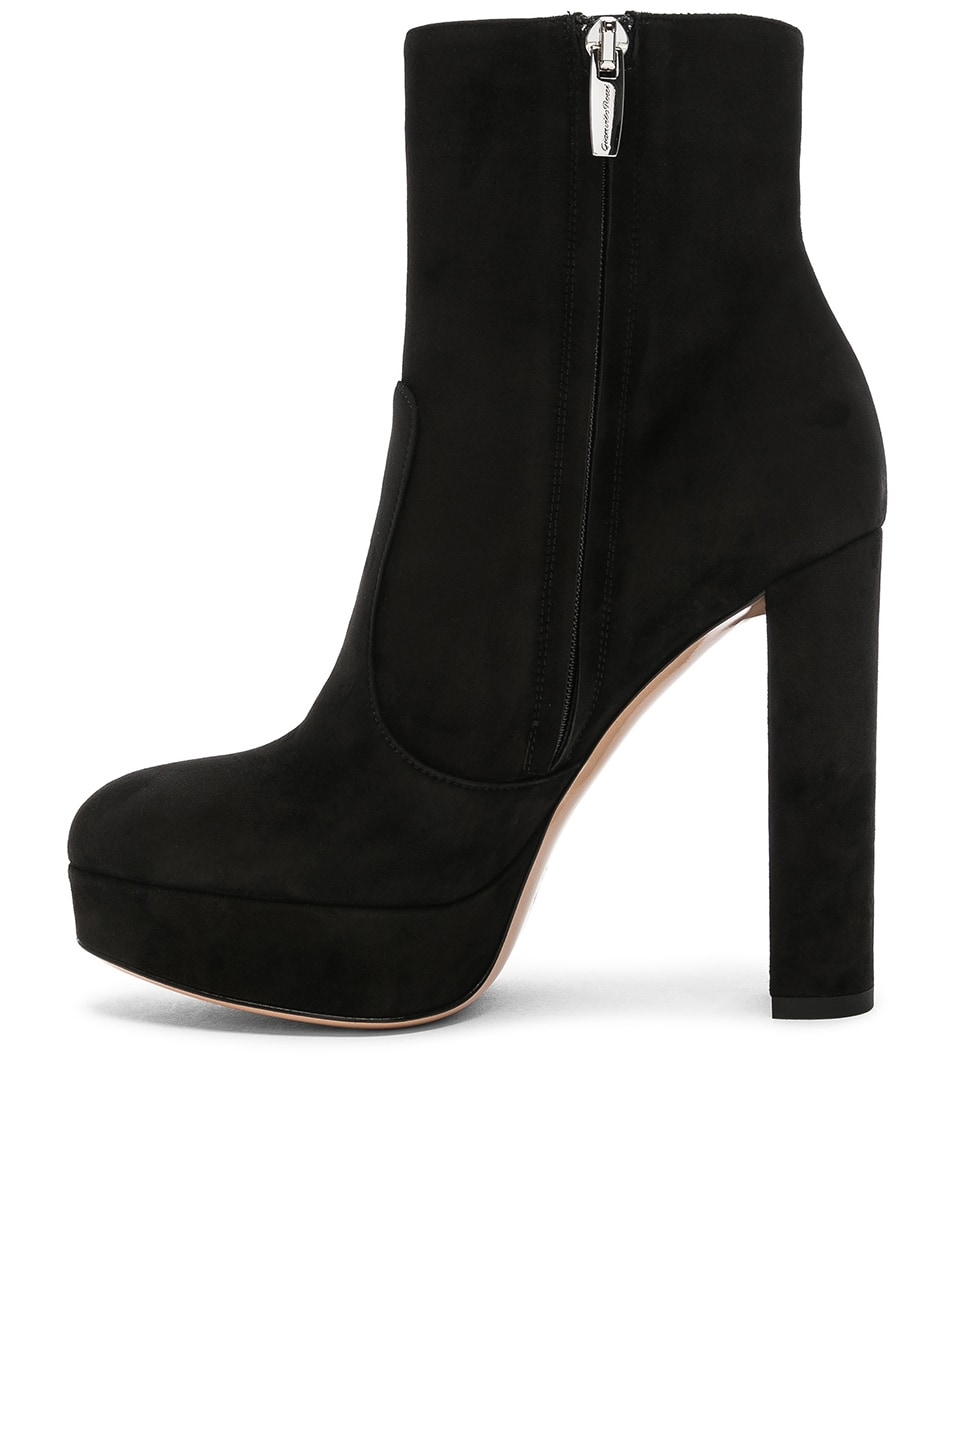 Image 5 of Gianvito Rossi Suede Brook Platform Ankle Boots in Black